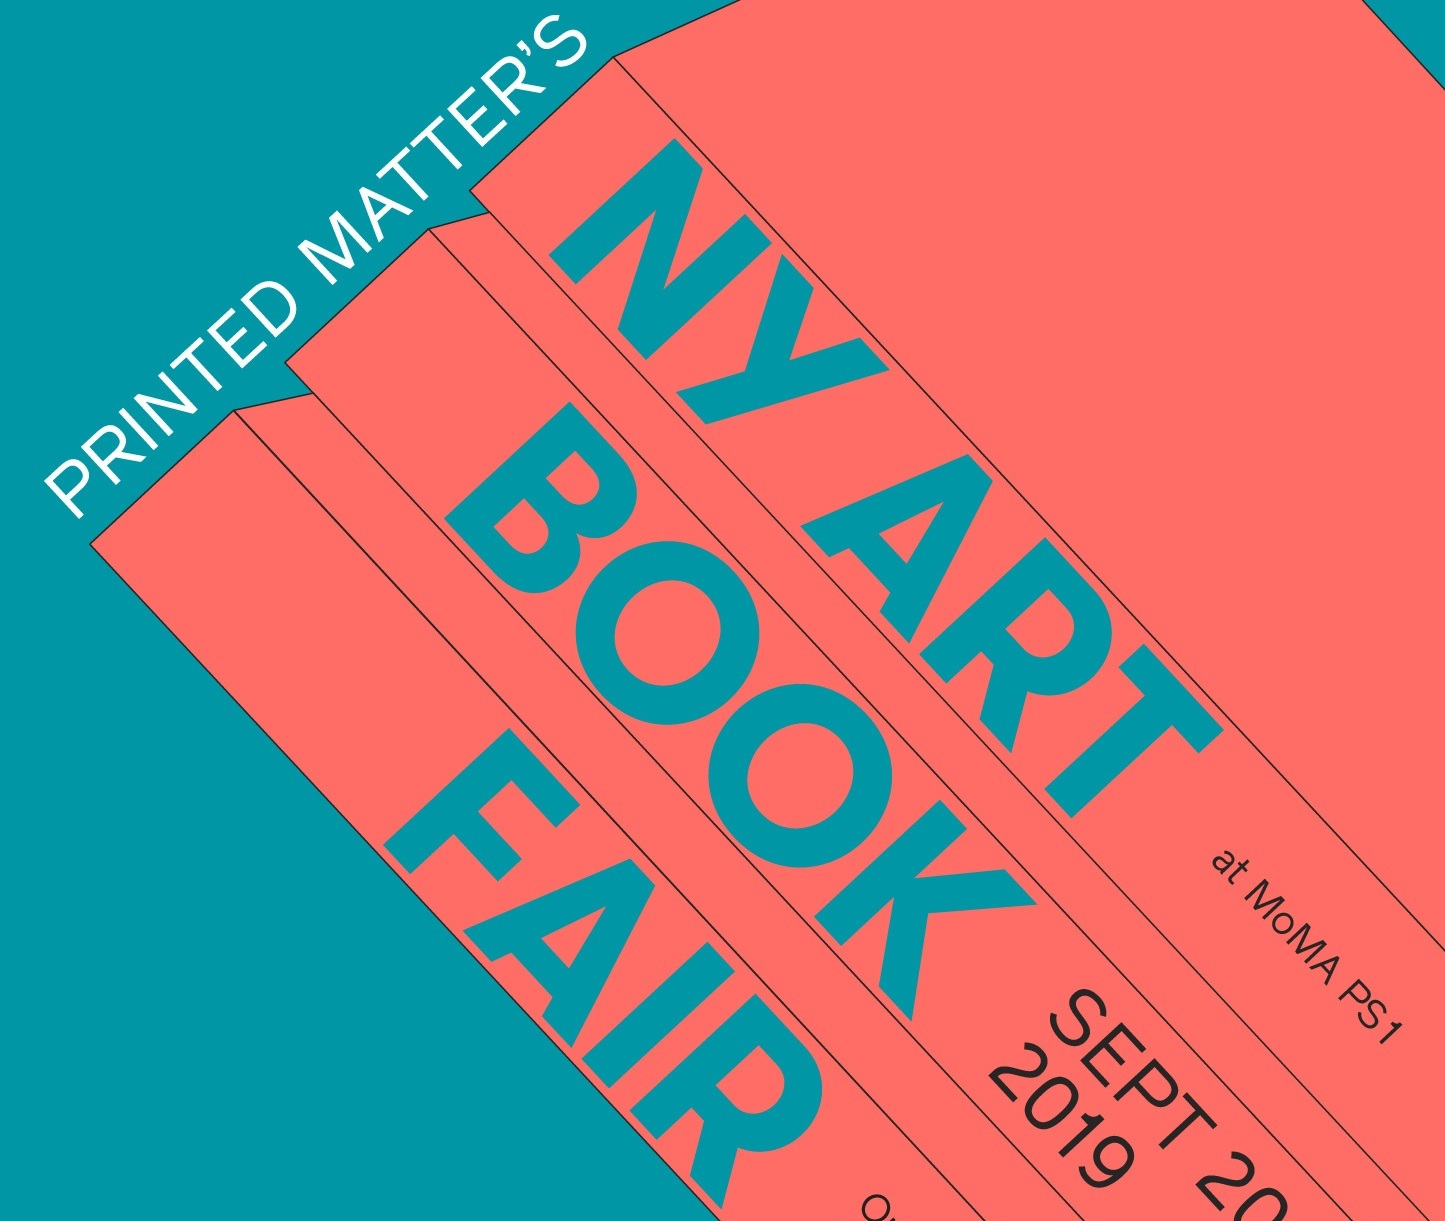 PRINTED MATTER'S NY ART BOOK FAIR   September 19-22, 2019